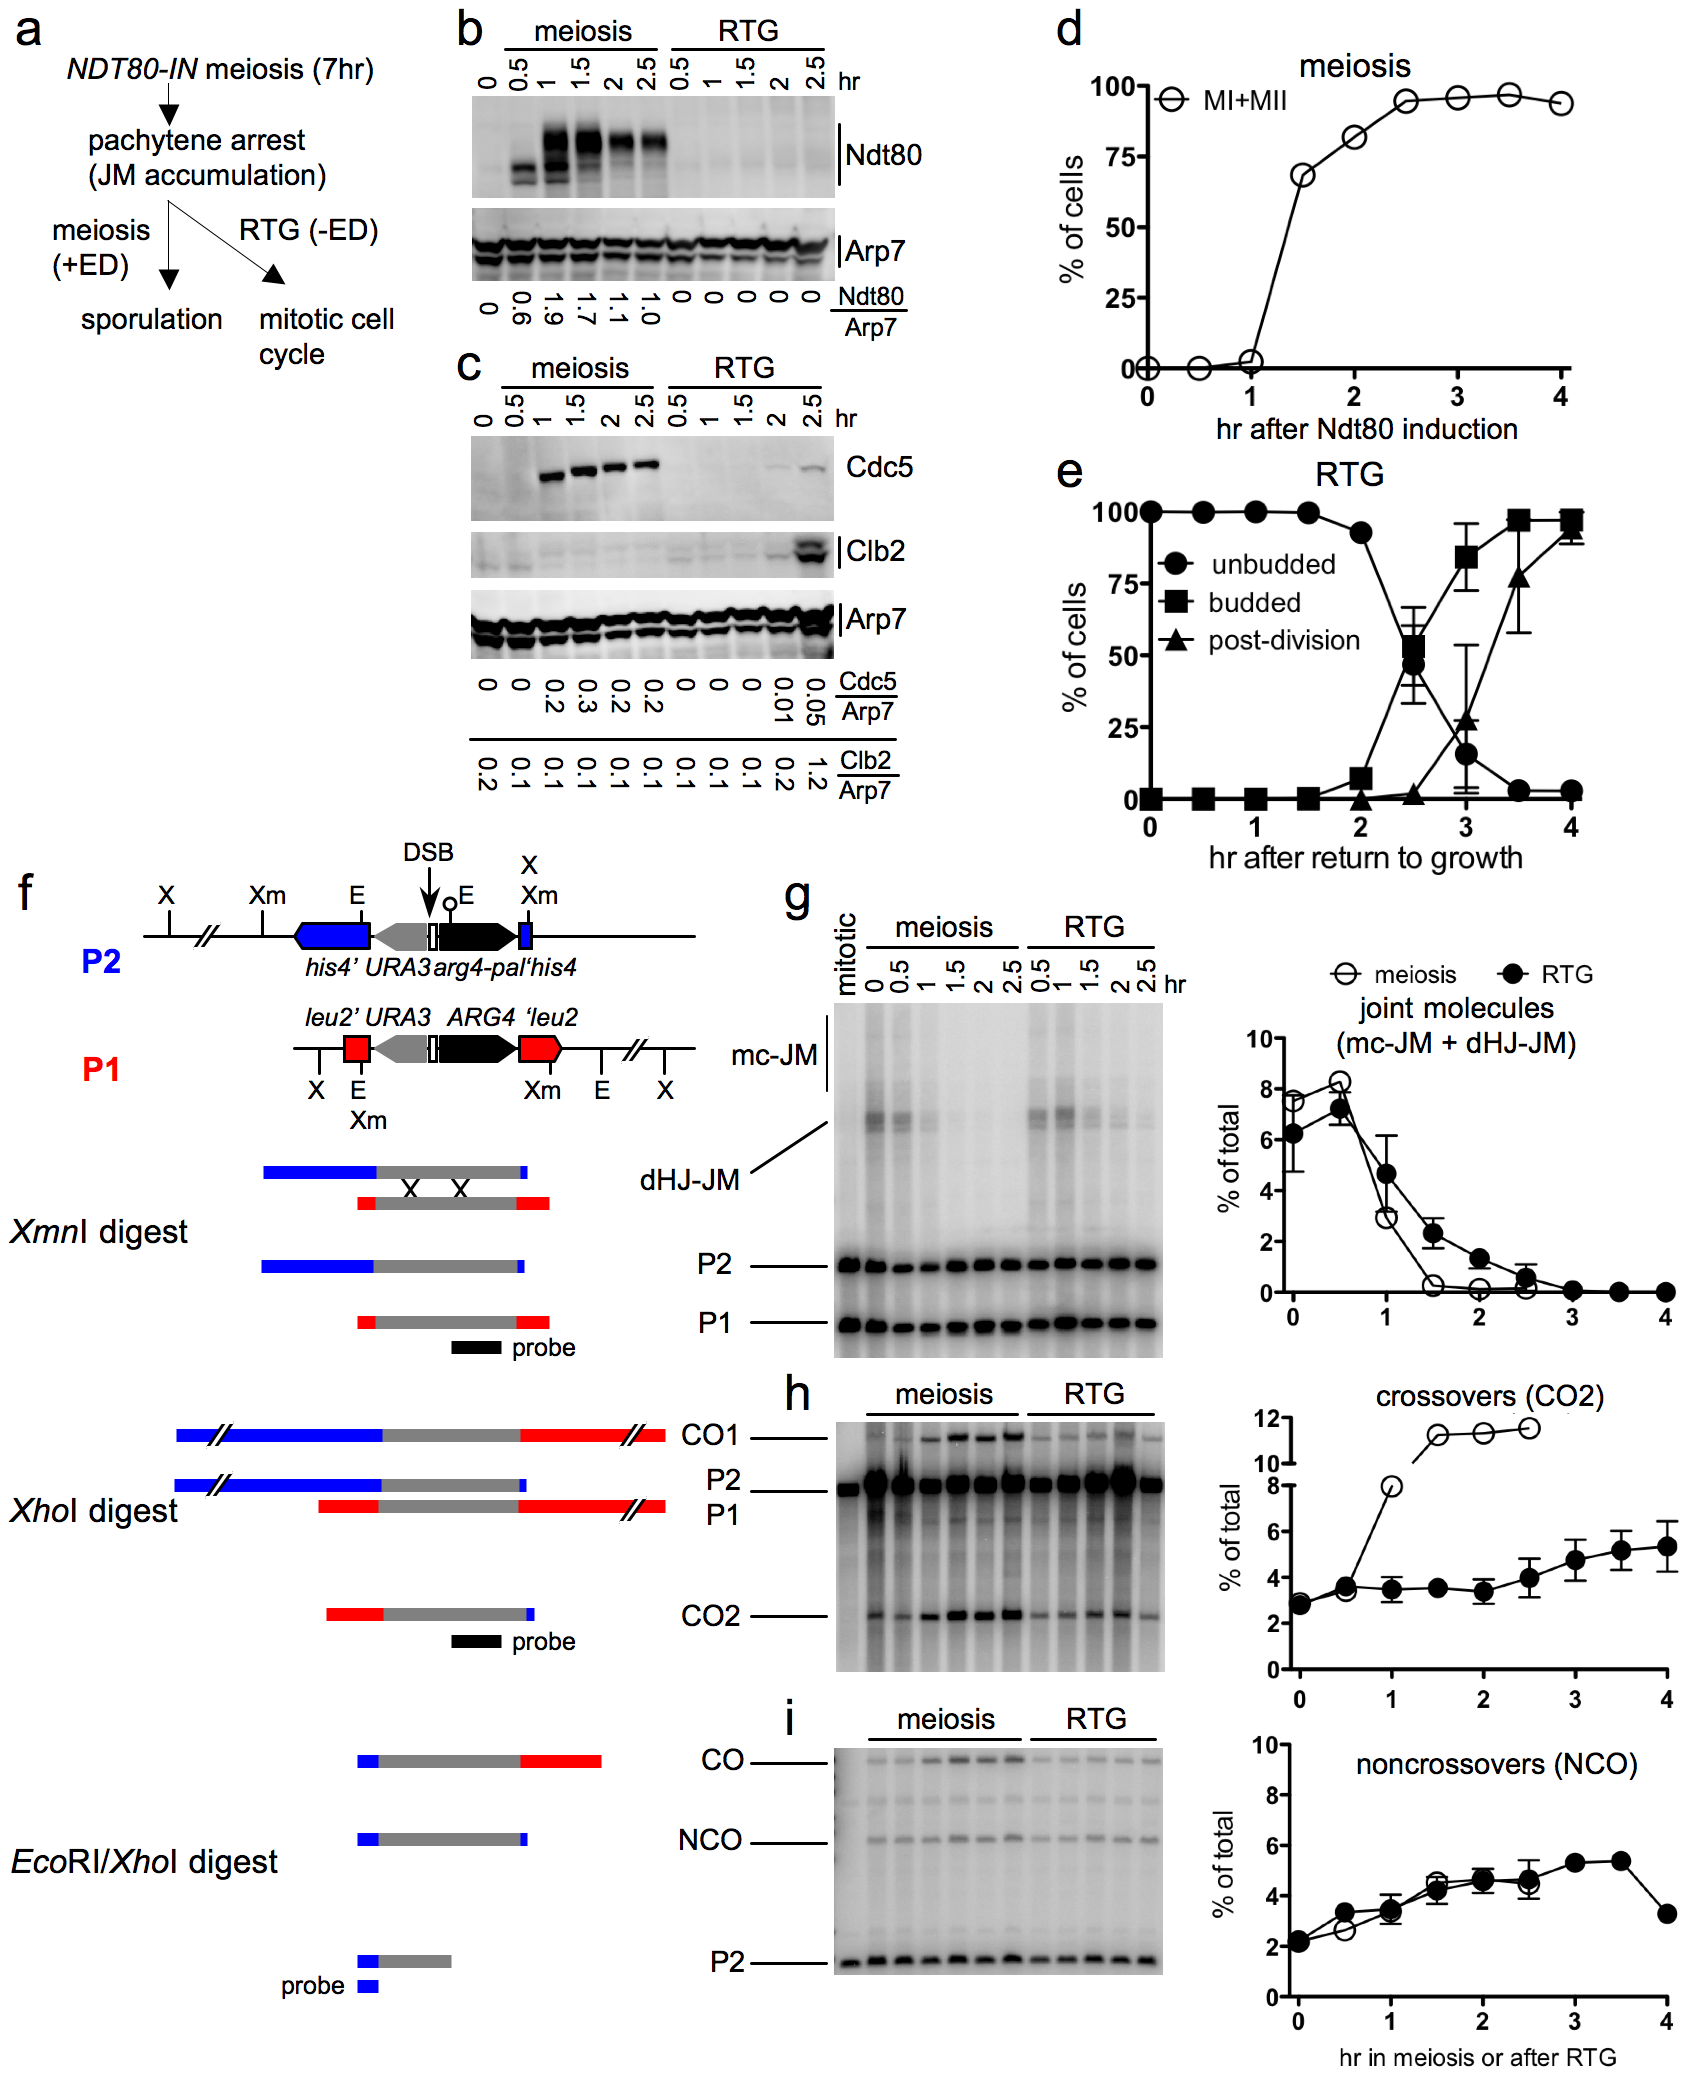 JM resolution and recombinant product formation during meiosis and RTG.